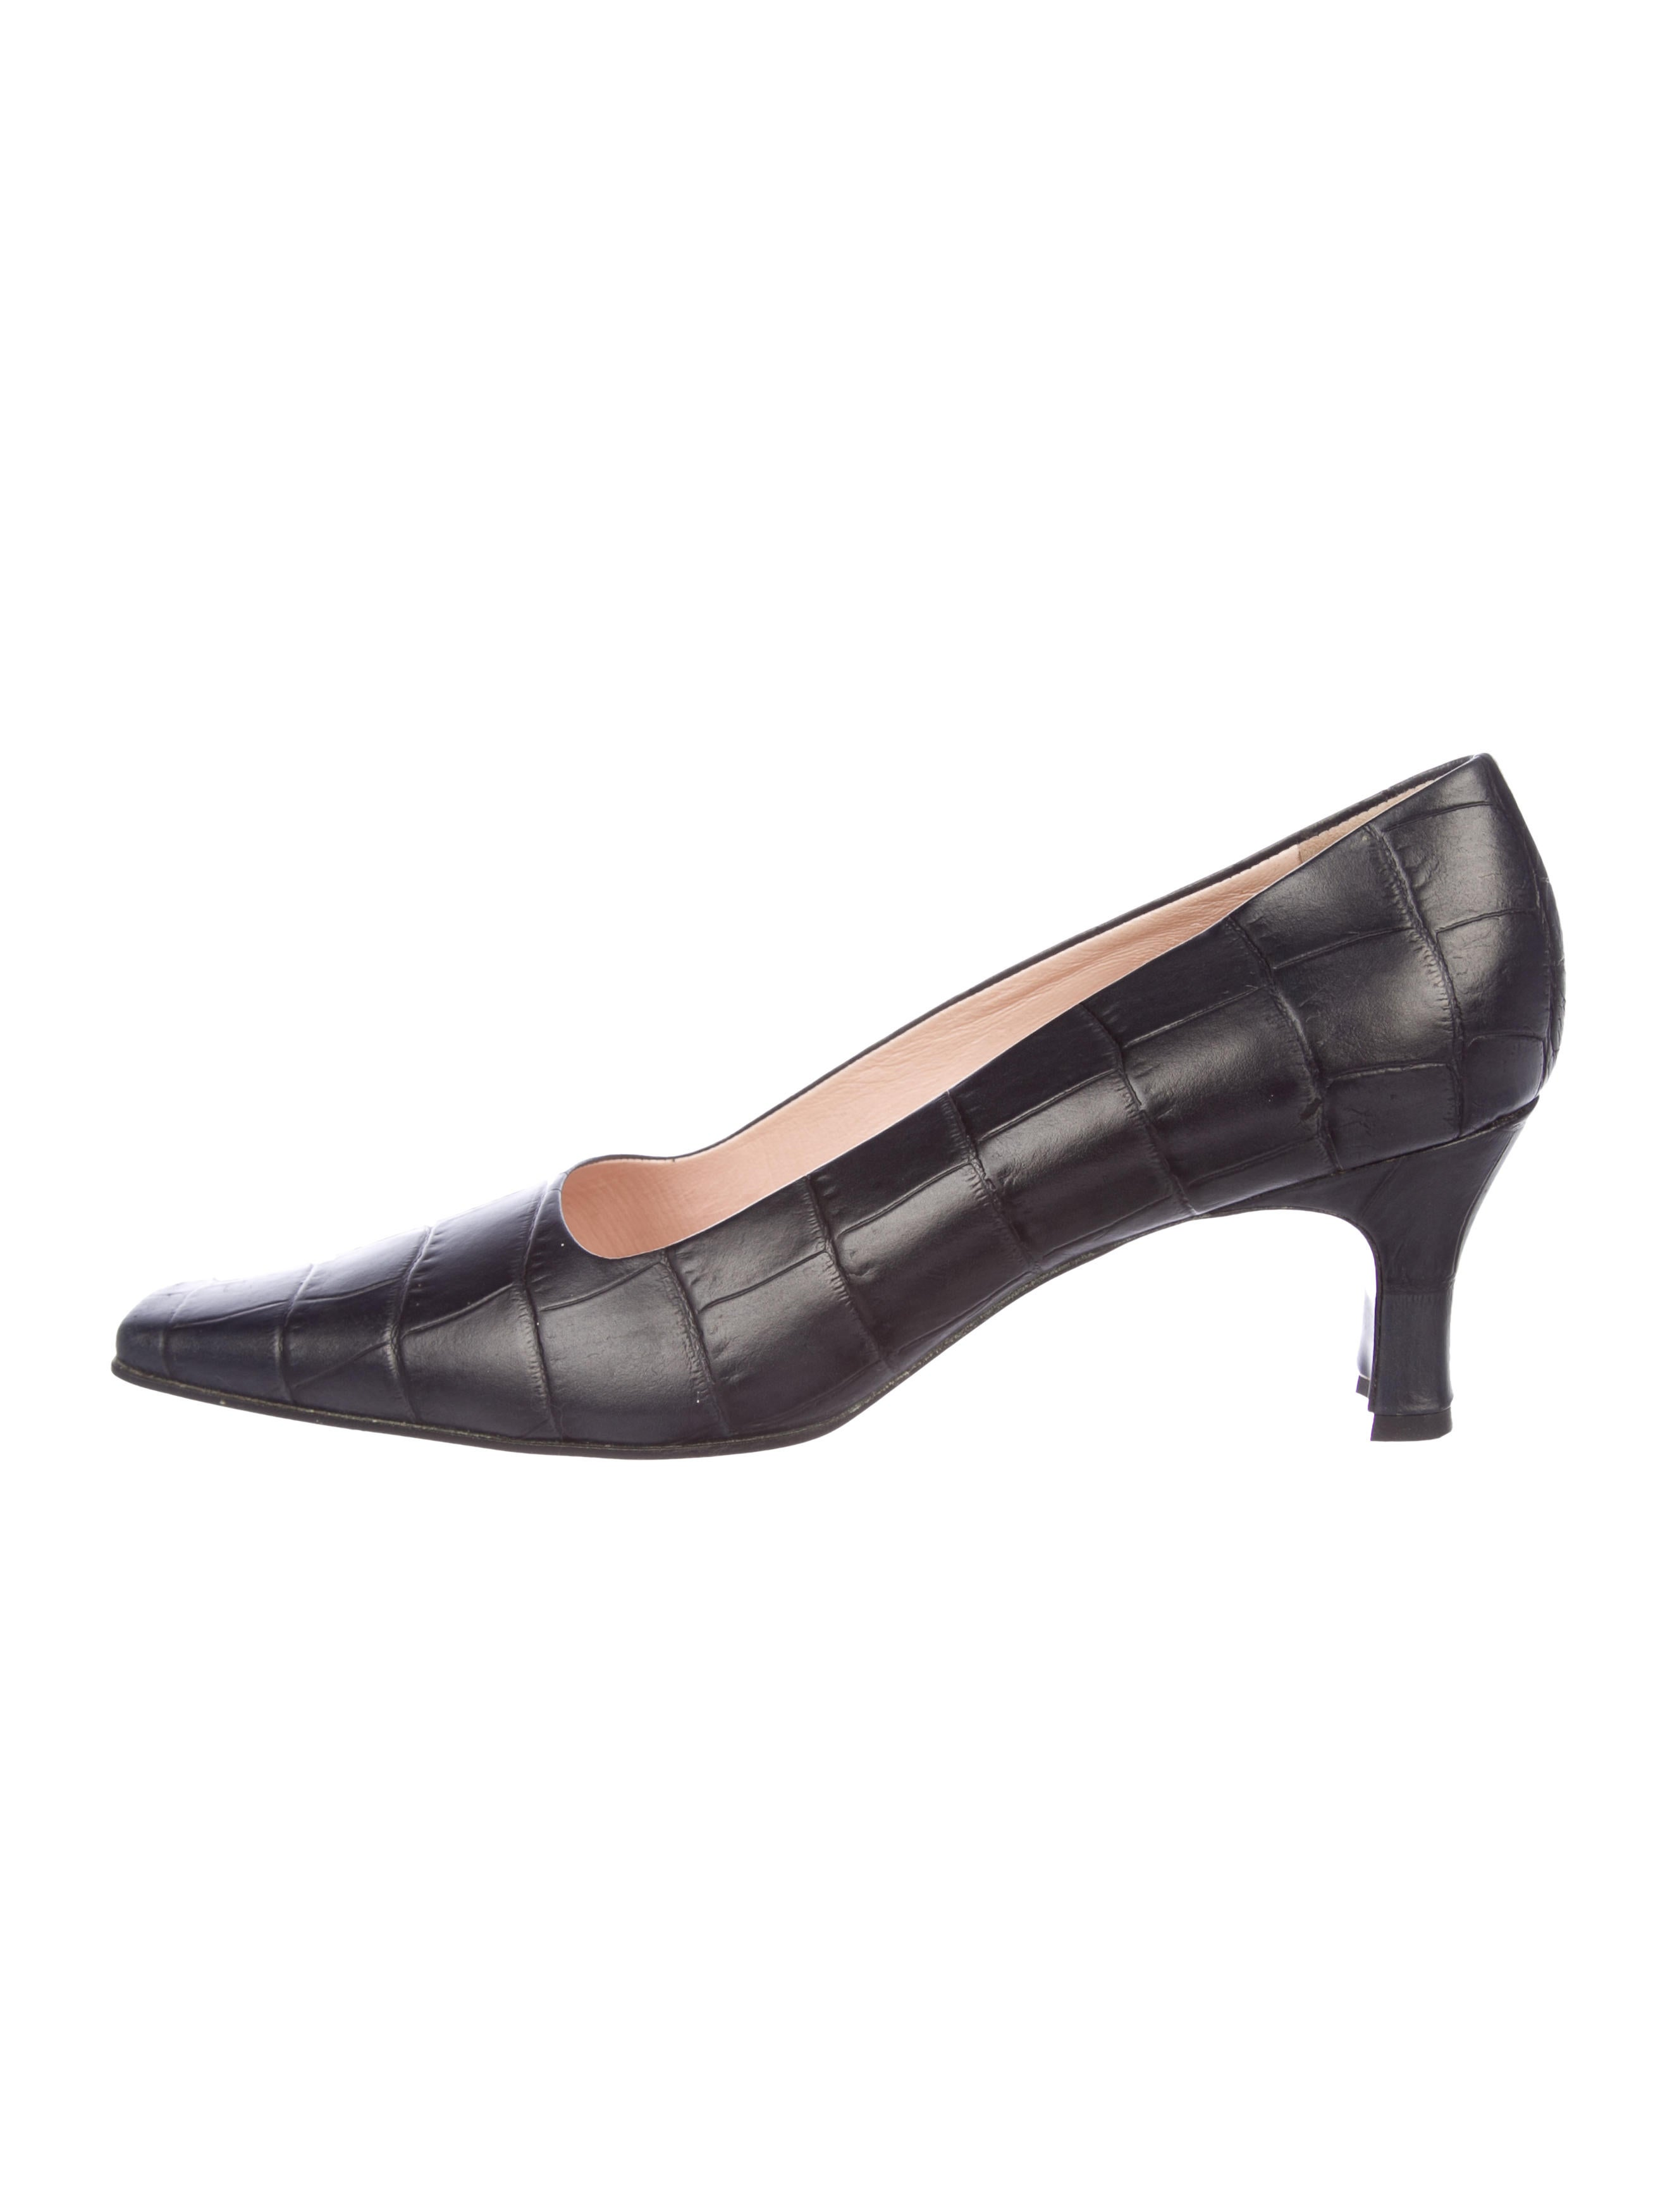 sale exclusive discount original Tod's Embossed Square-Toe Pumps cheap recommend 4M6hRBHu